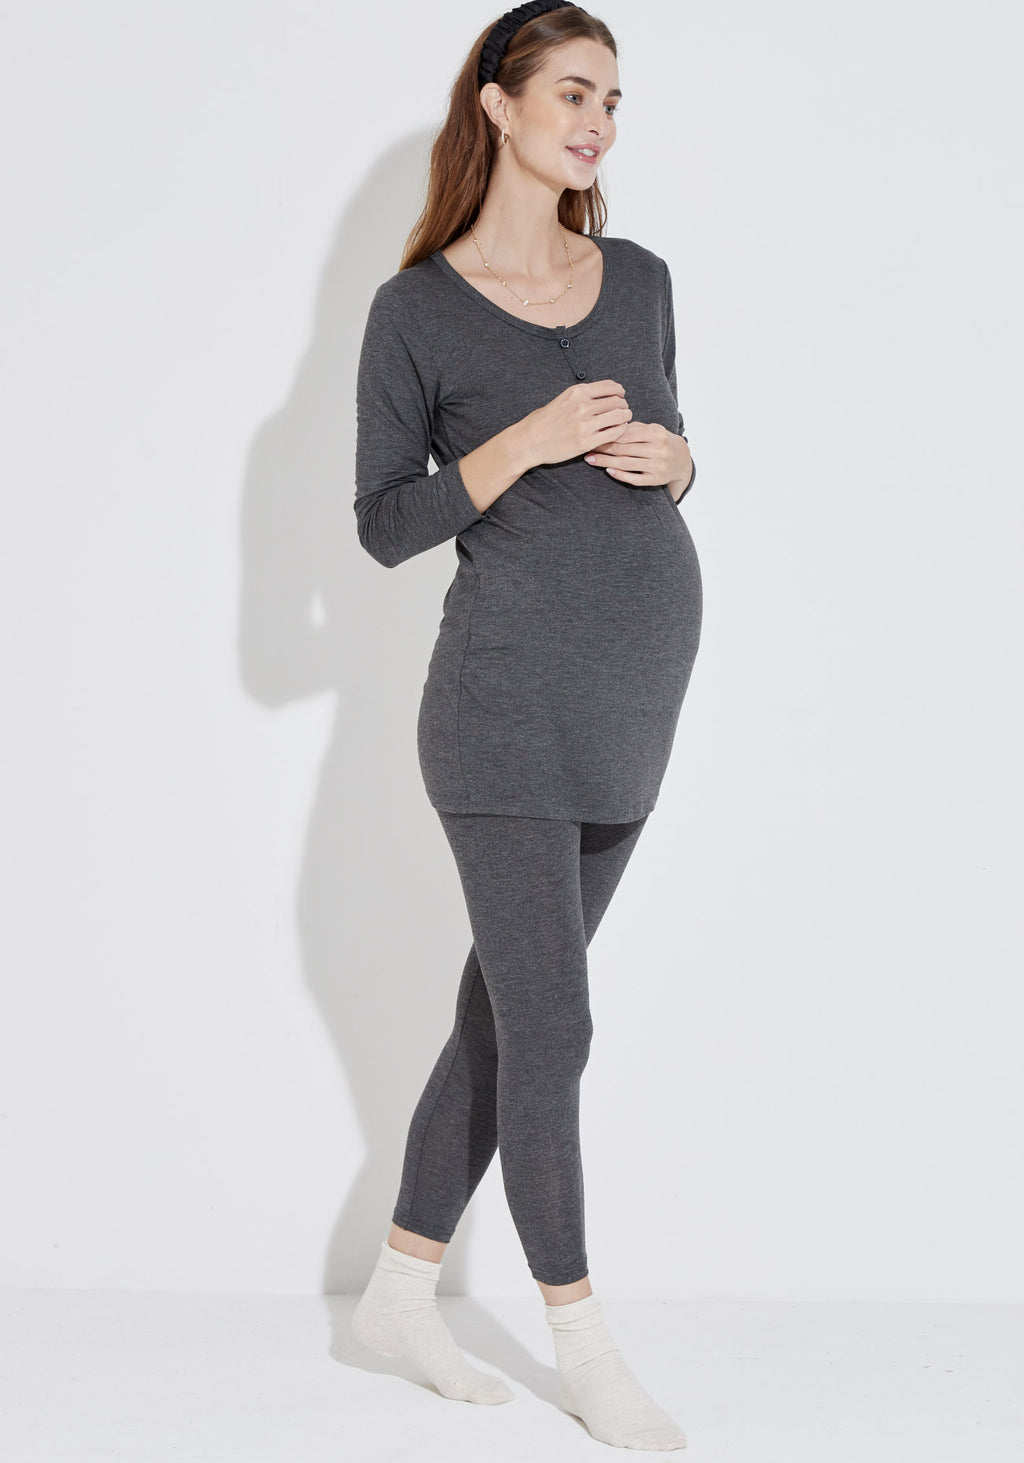 HOUSE NURSING TOP & LEGGINGS SET